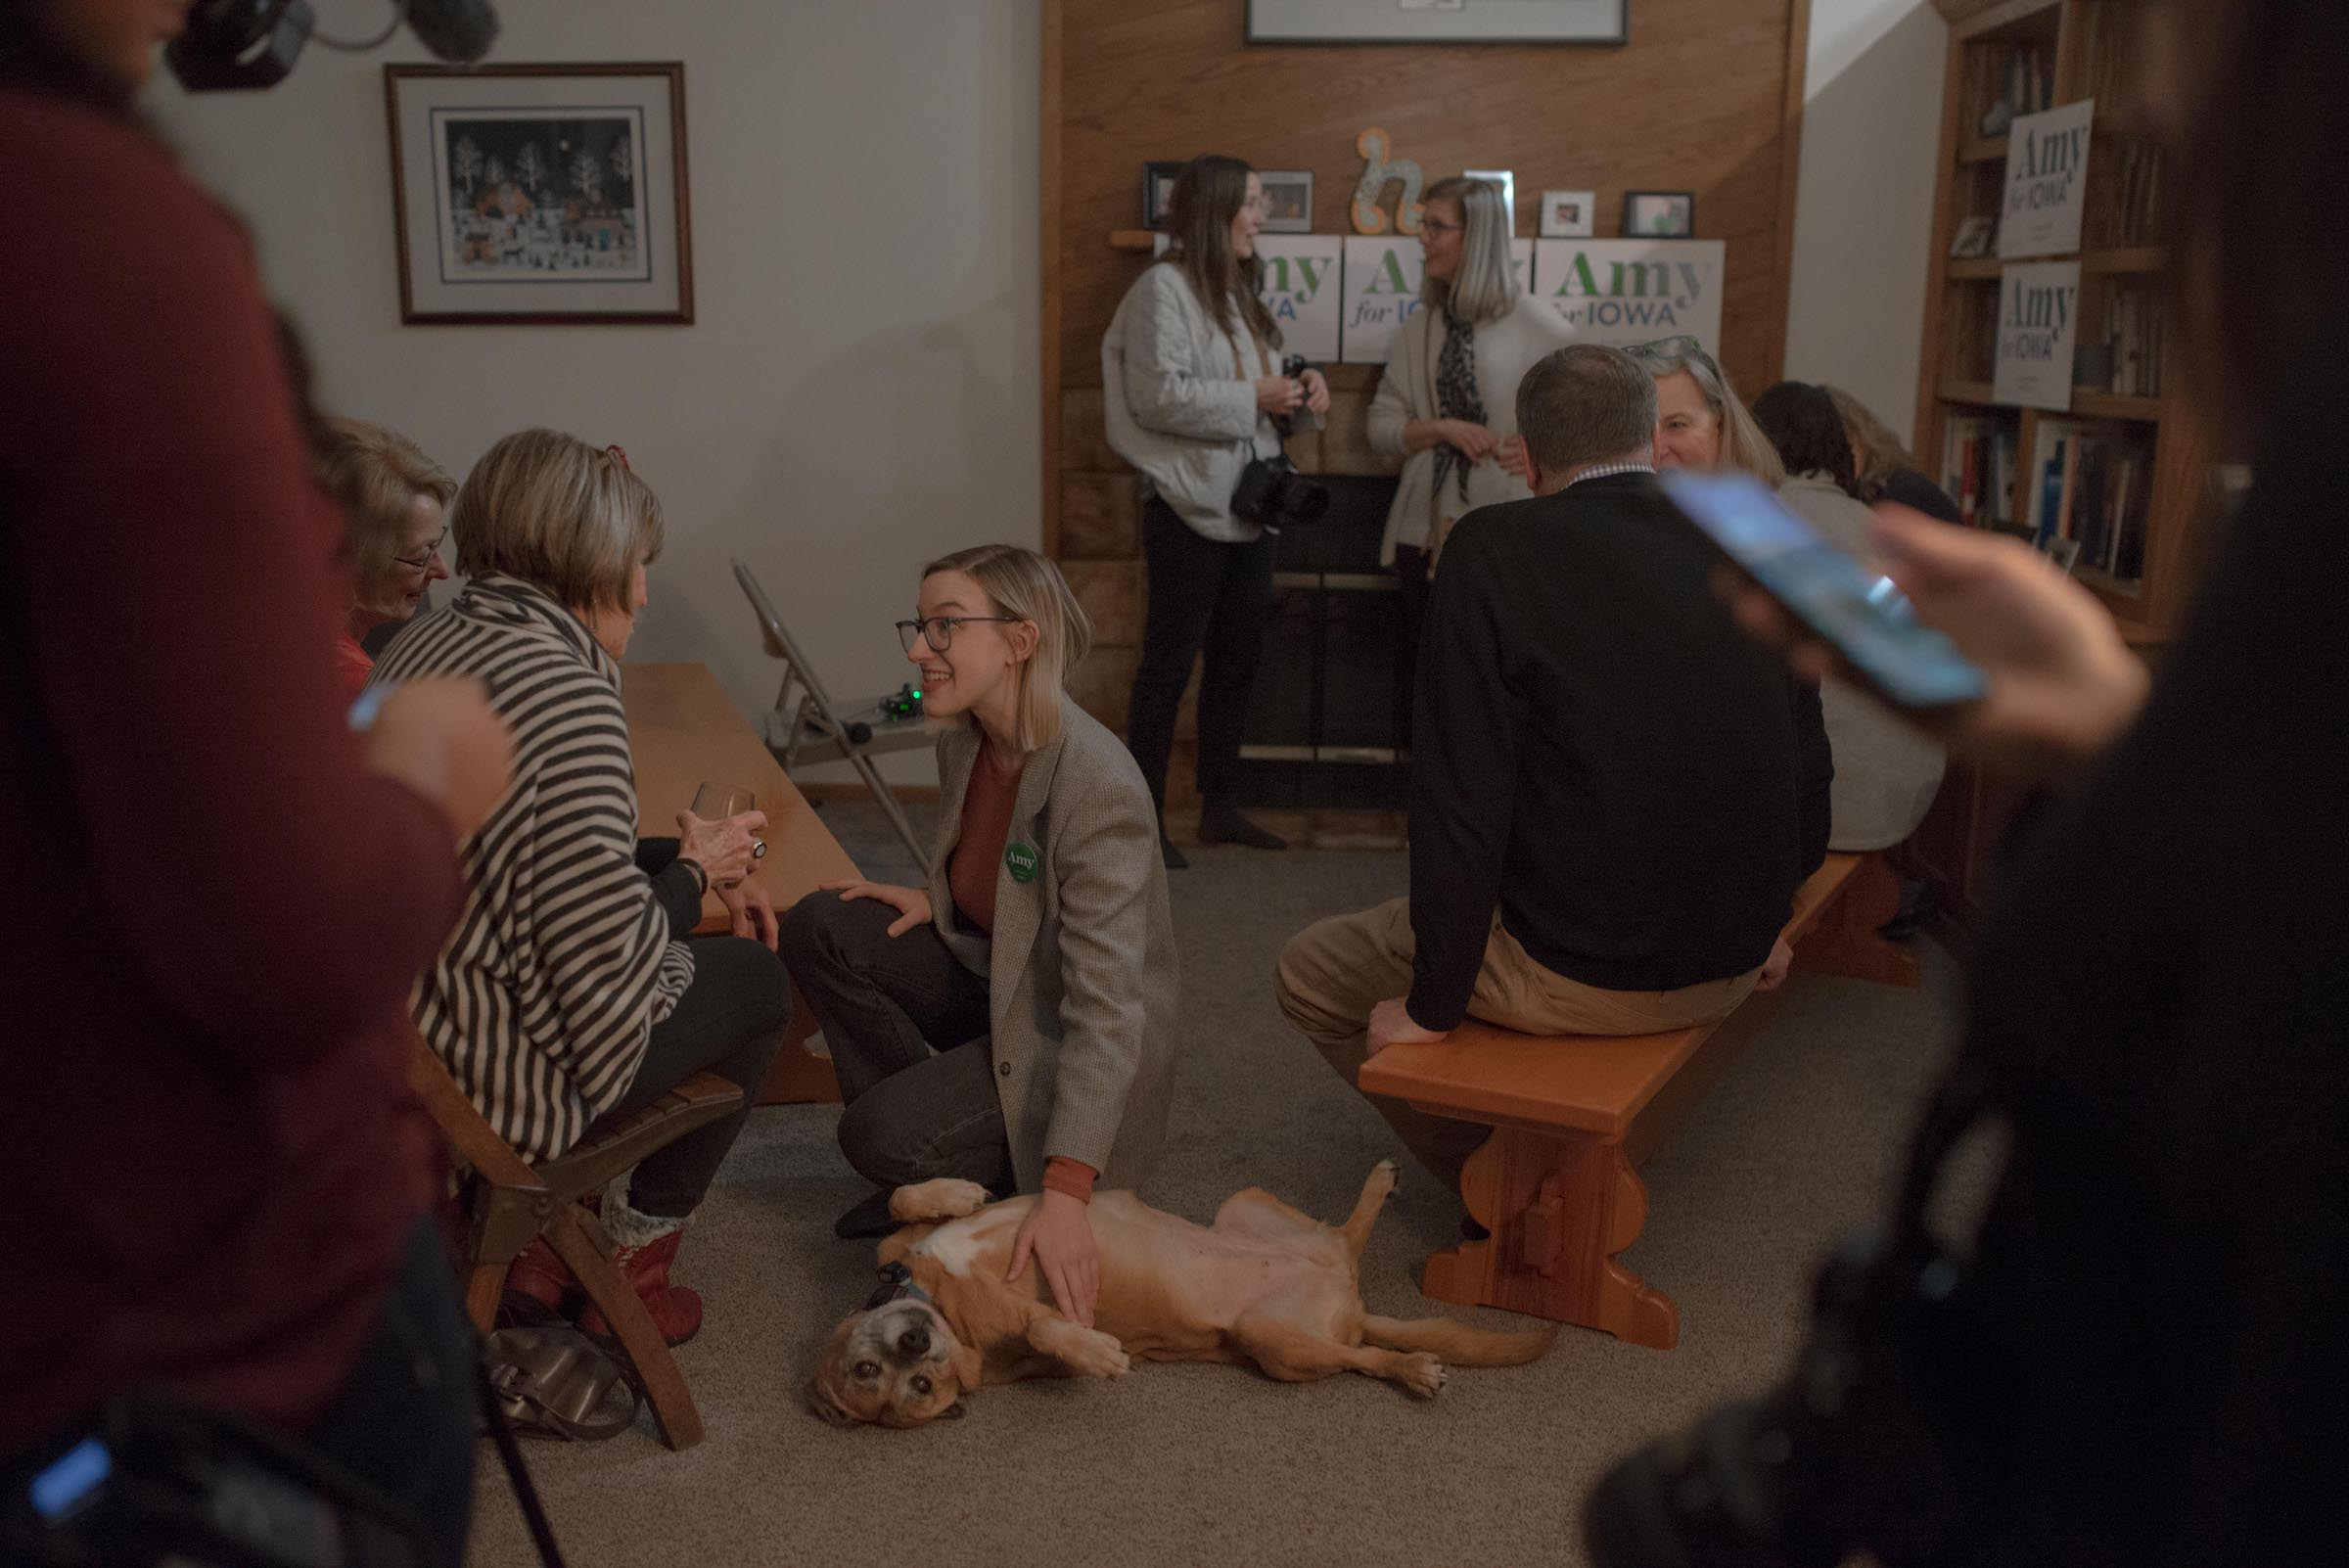 Abigail Bessler pets a dog while speaking with supporters at a Hotdish House Party.